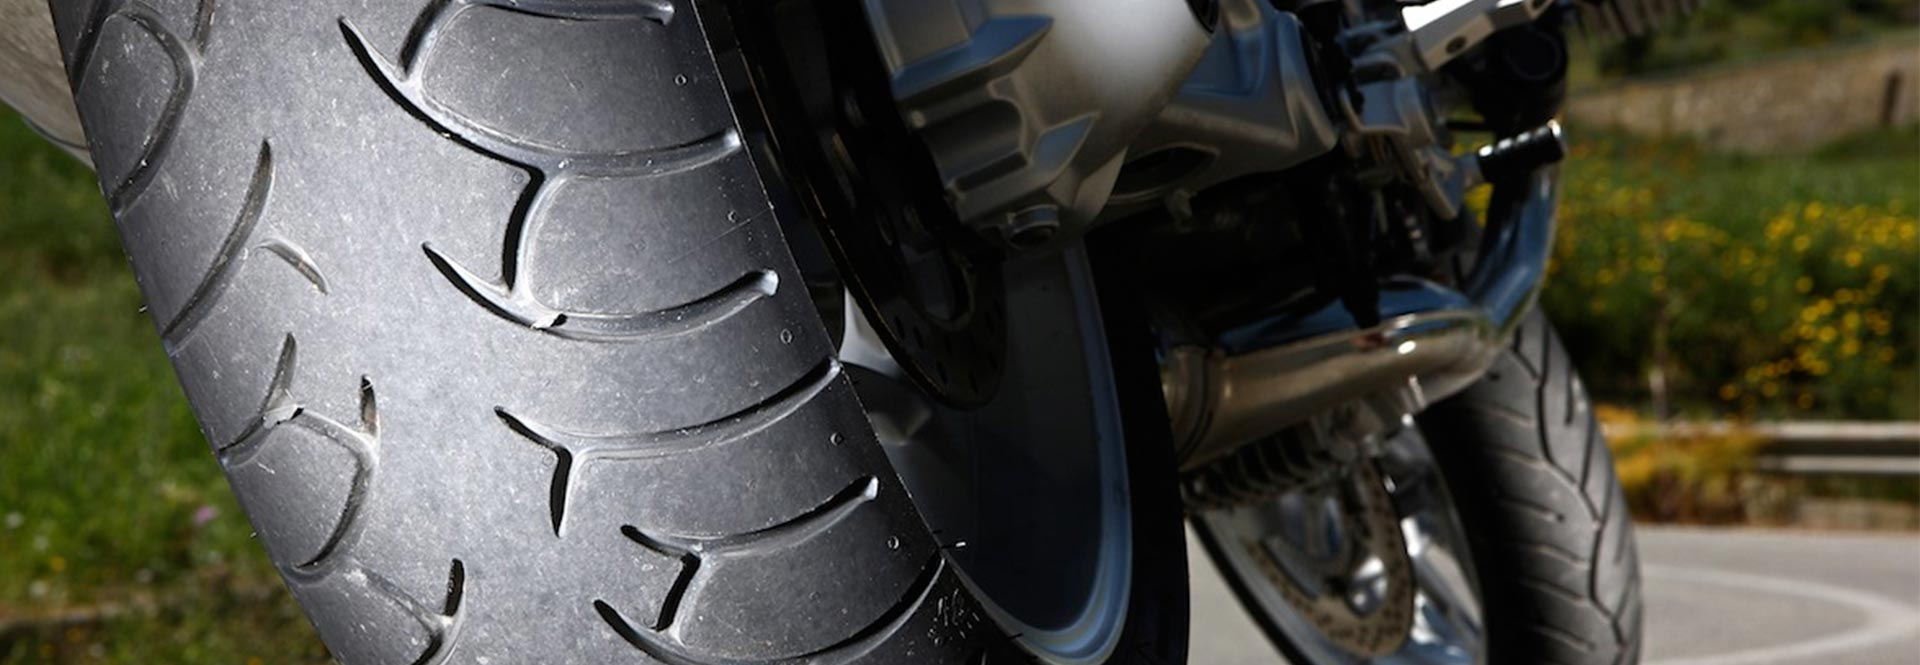 lotourtire motorcycle tyre